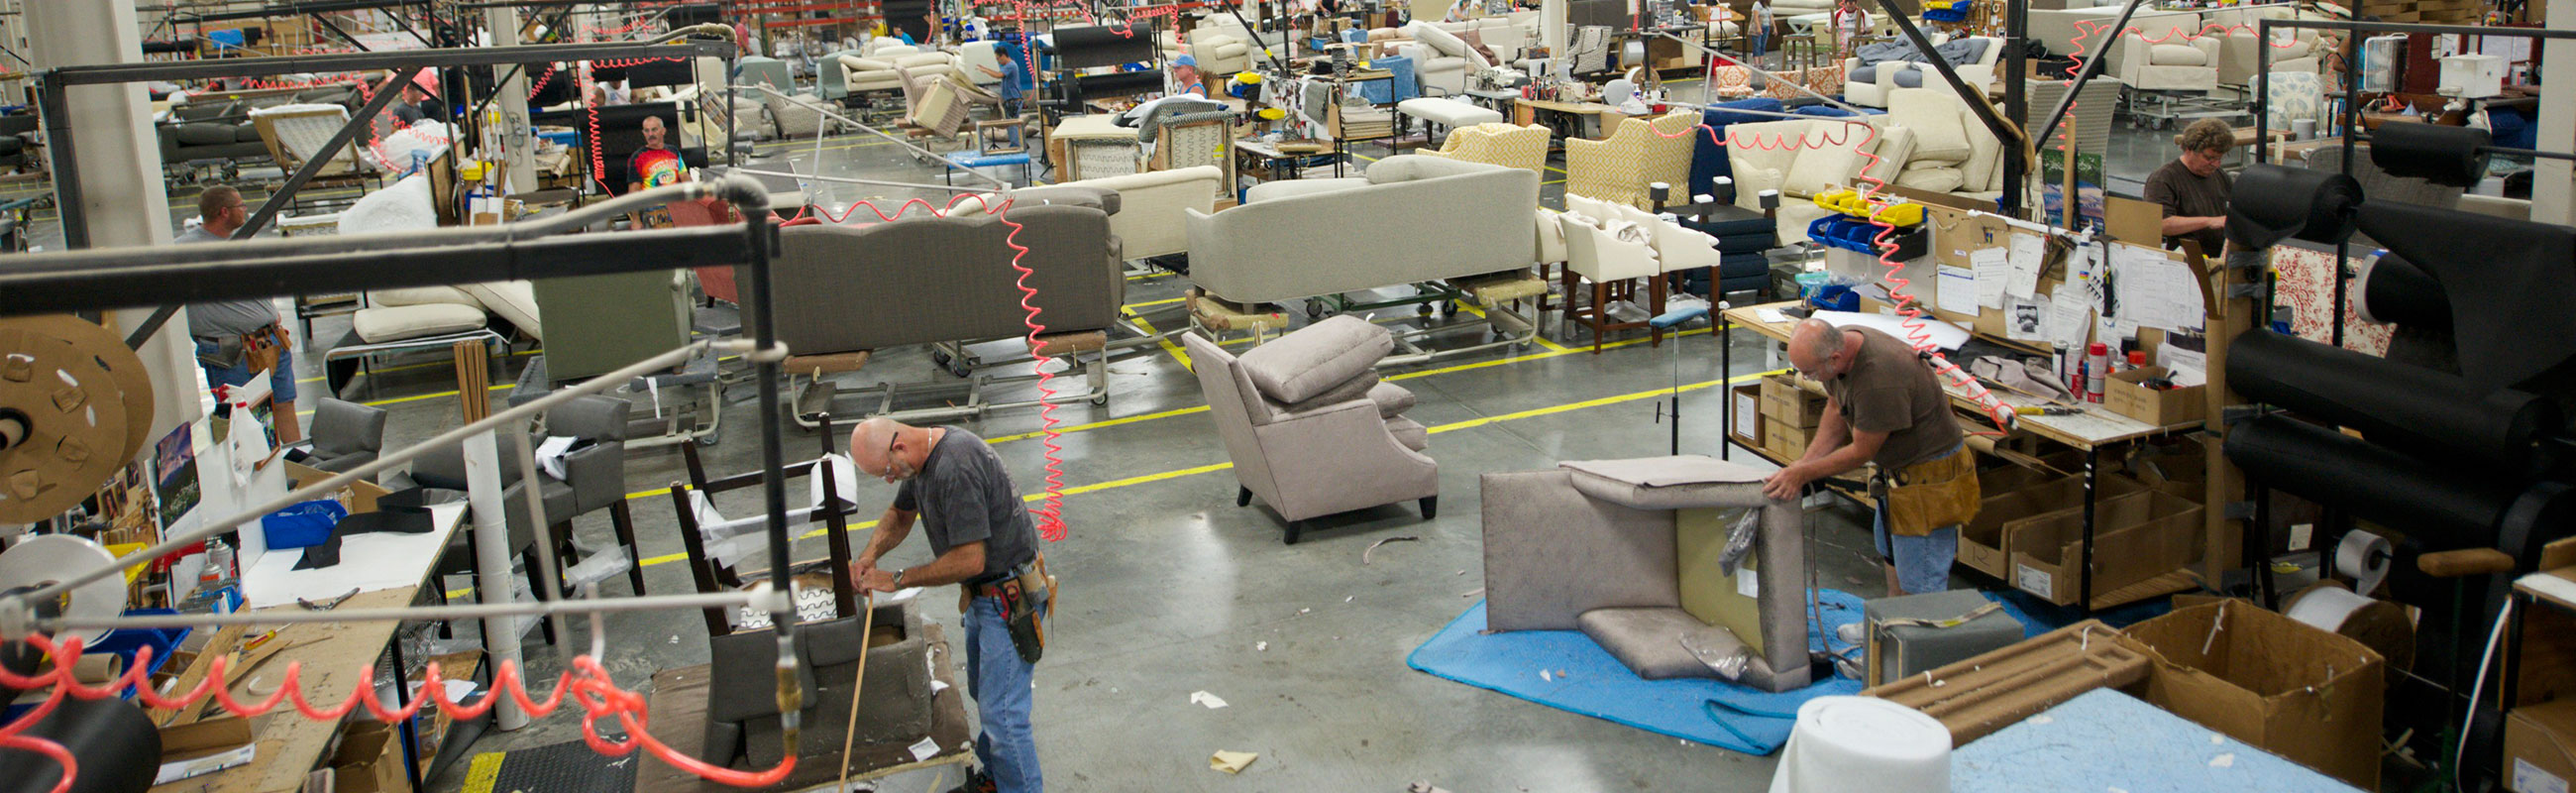 Furniture building upholstery